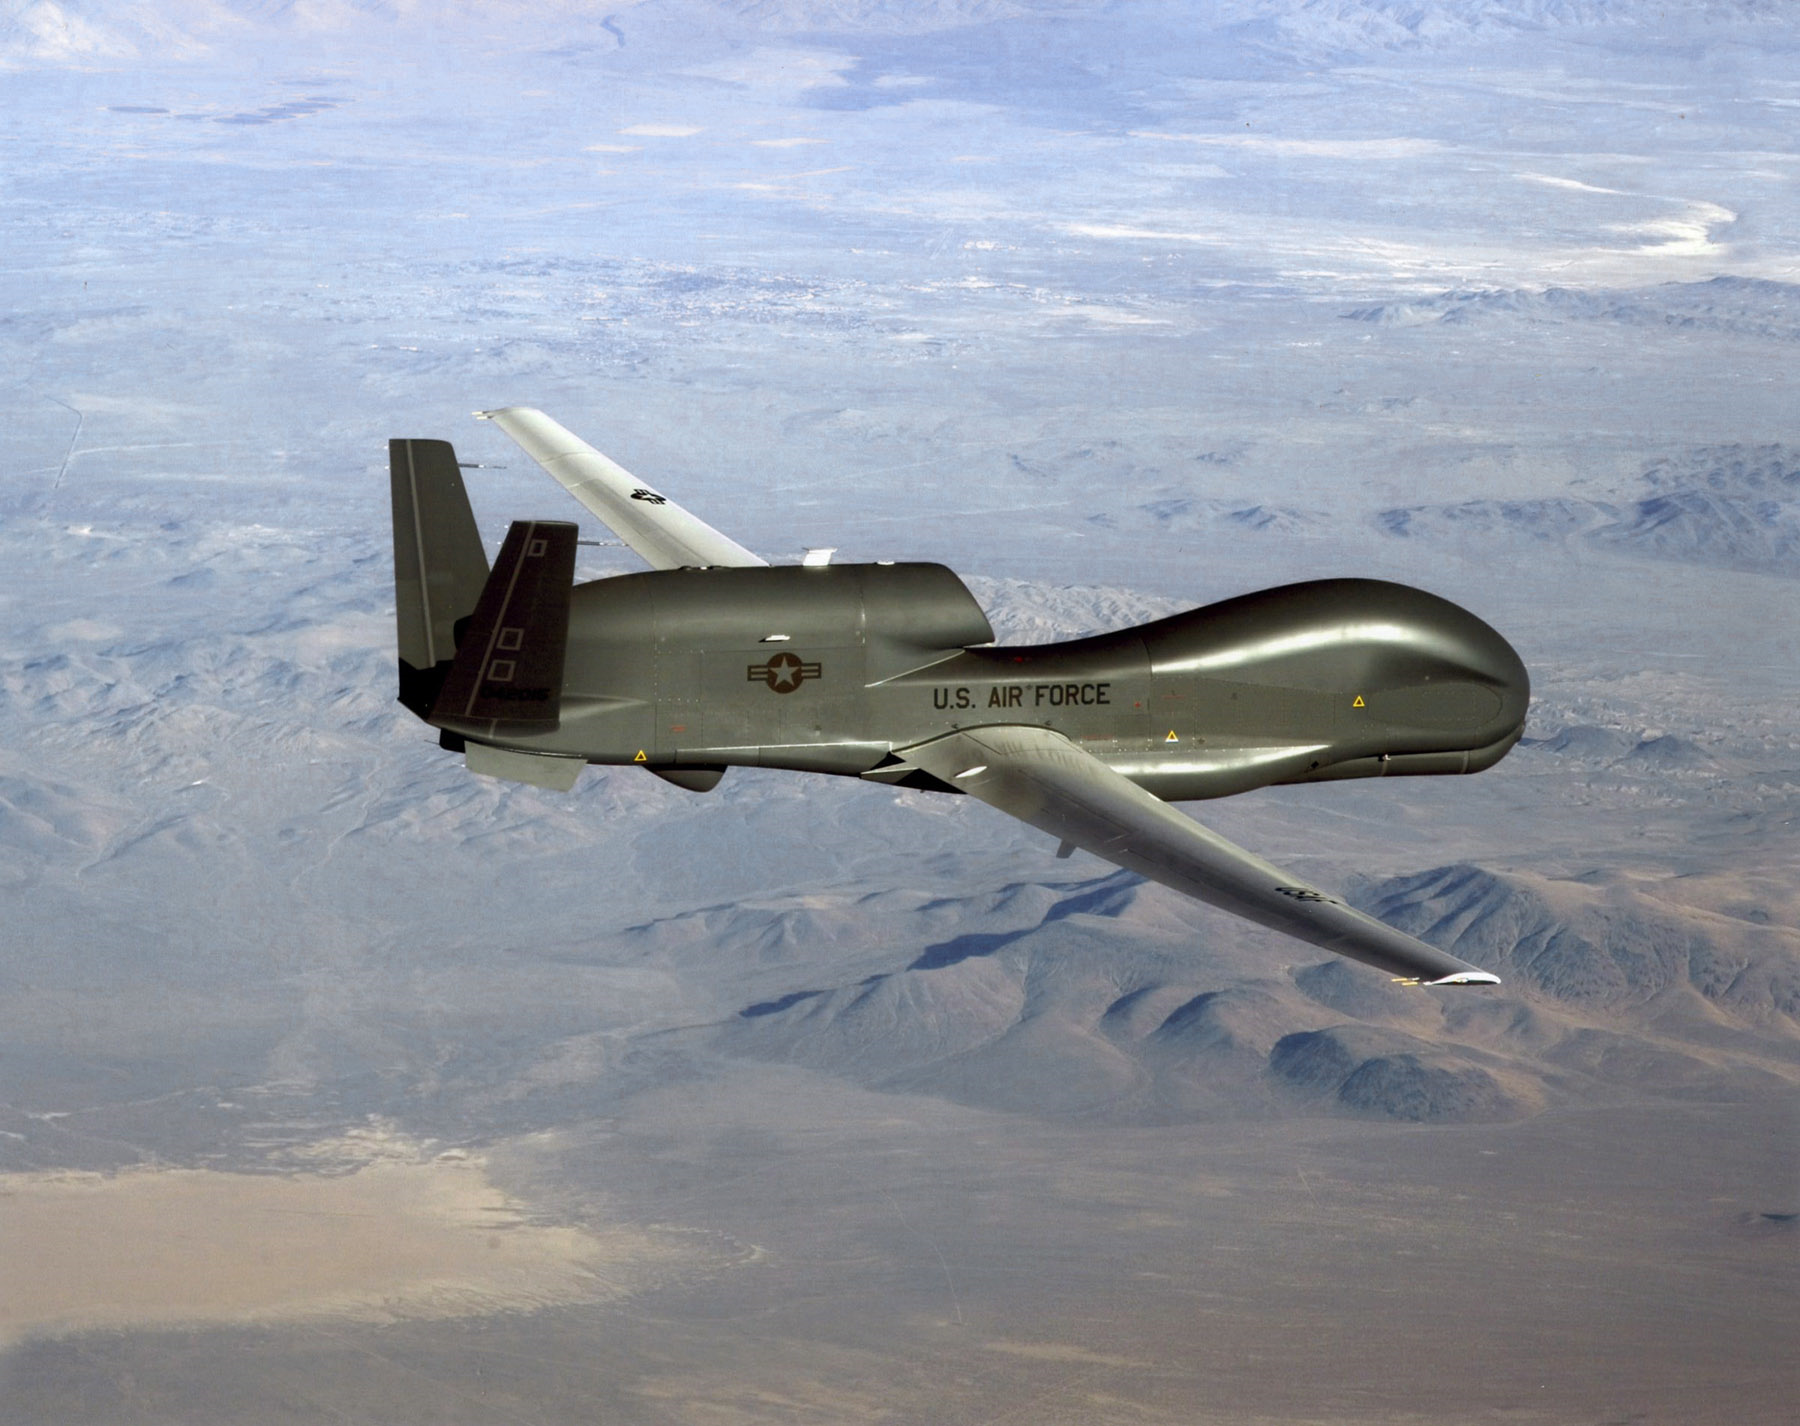 ARTICLE: Iran Shot Down a $176 Million U.S. Drone. Here's What to Know About the RQ-4 Global Hawk